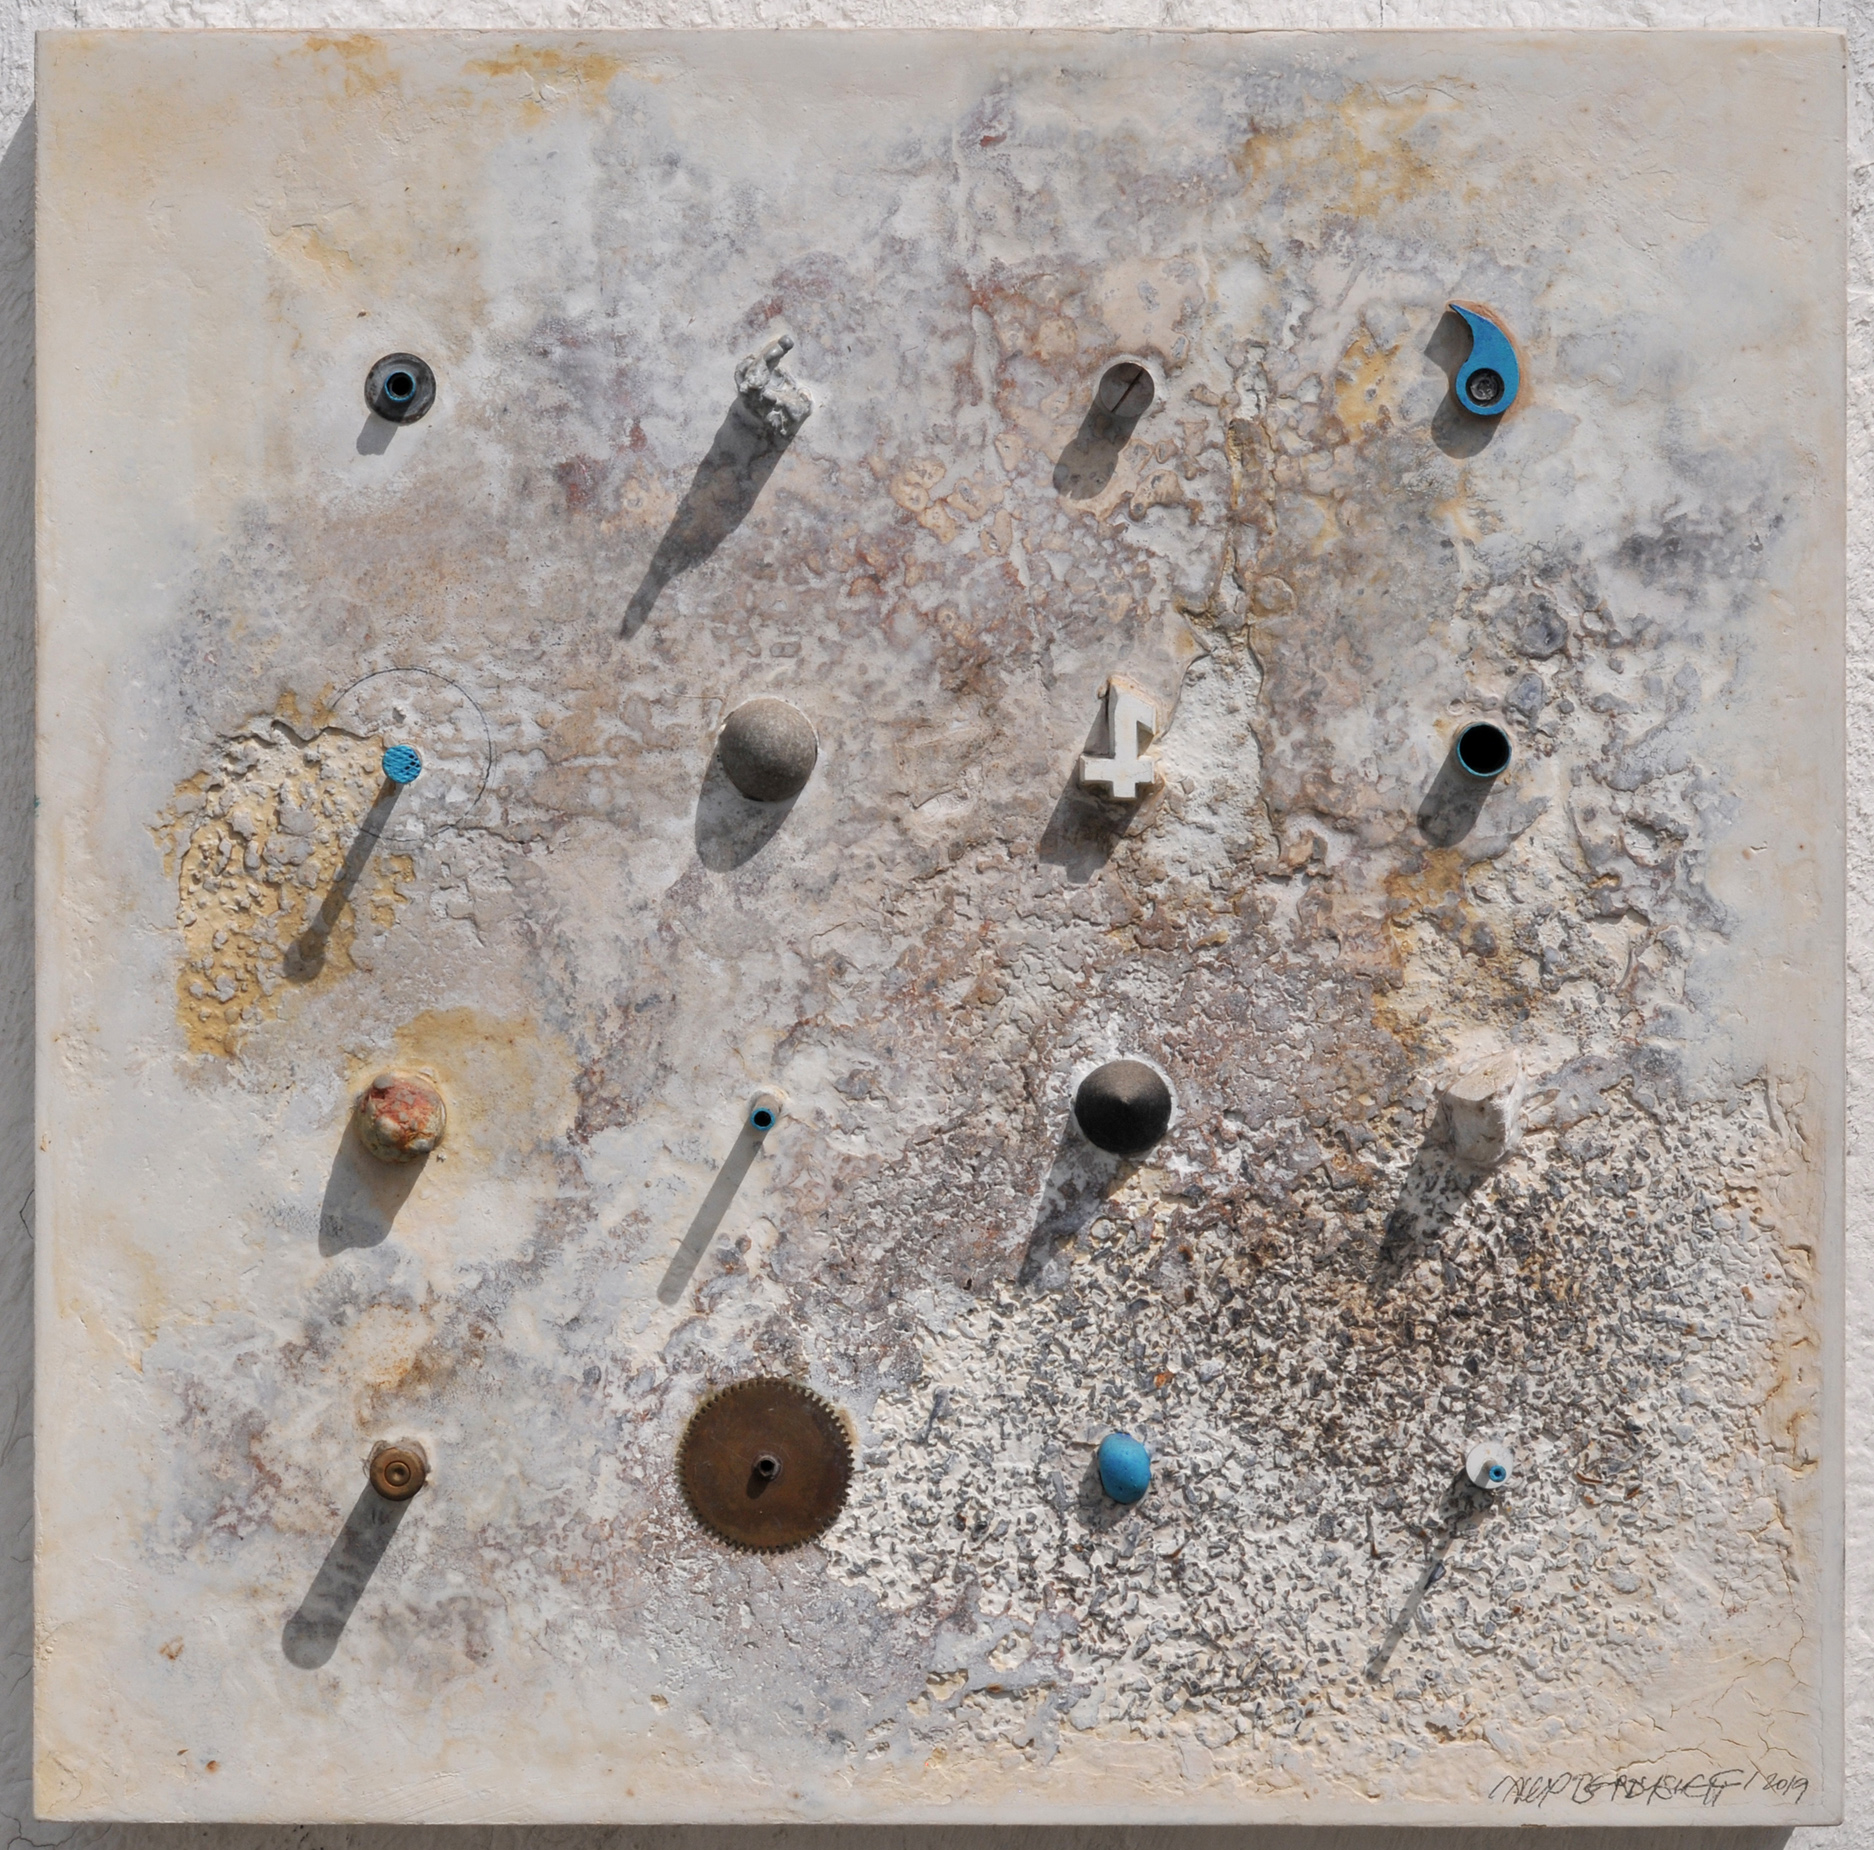 White Square Relief series, gesso, rust, objects on wood, 46x46x11cm, 2017-2019